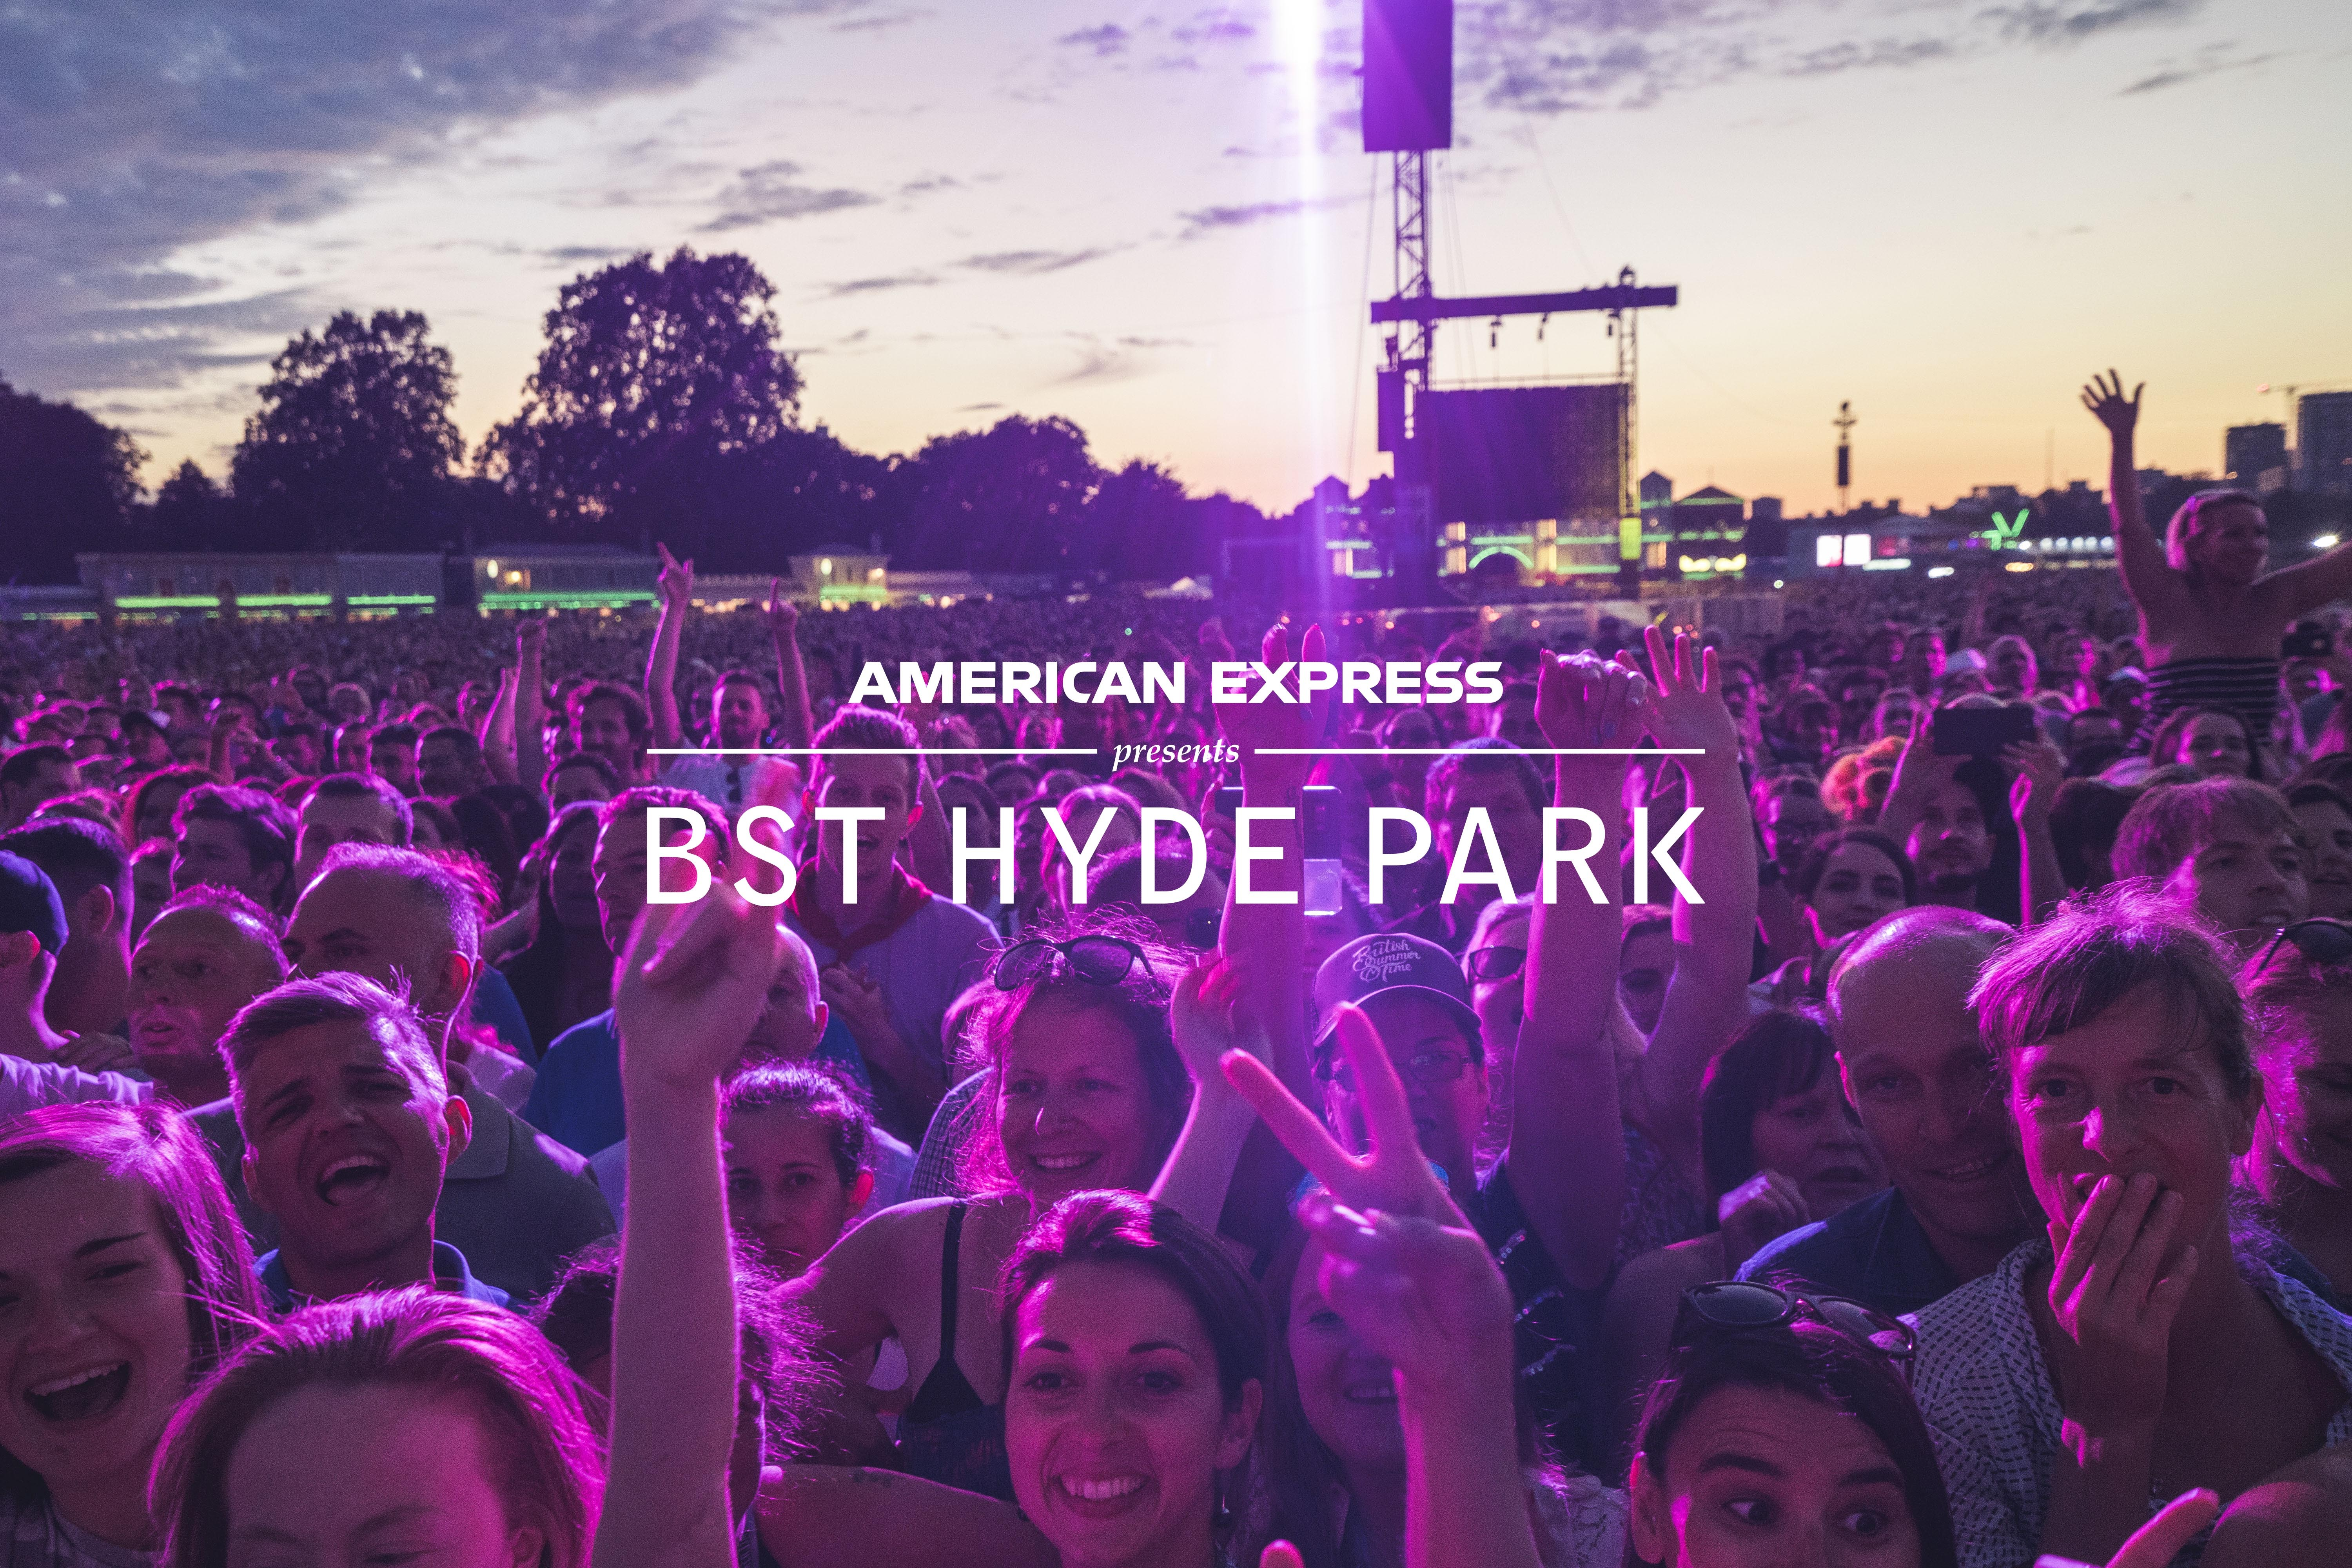 Aeg Global Partnerships Announce American Express As Presenting Partner For Bst Hyde Park 2020 Business Wire